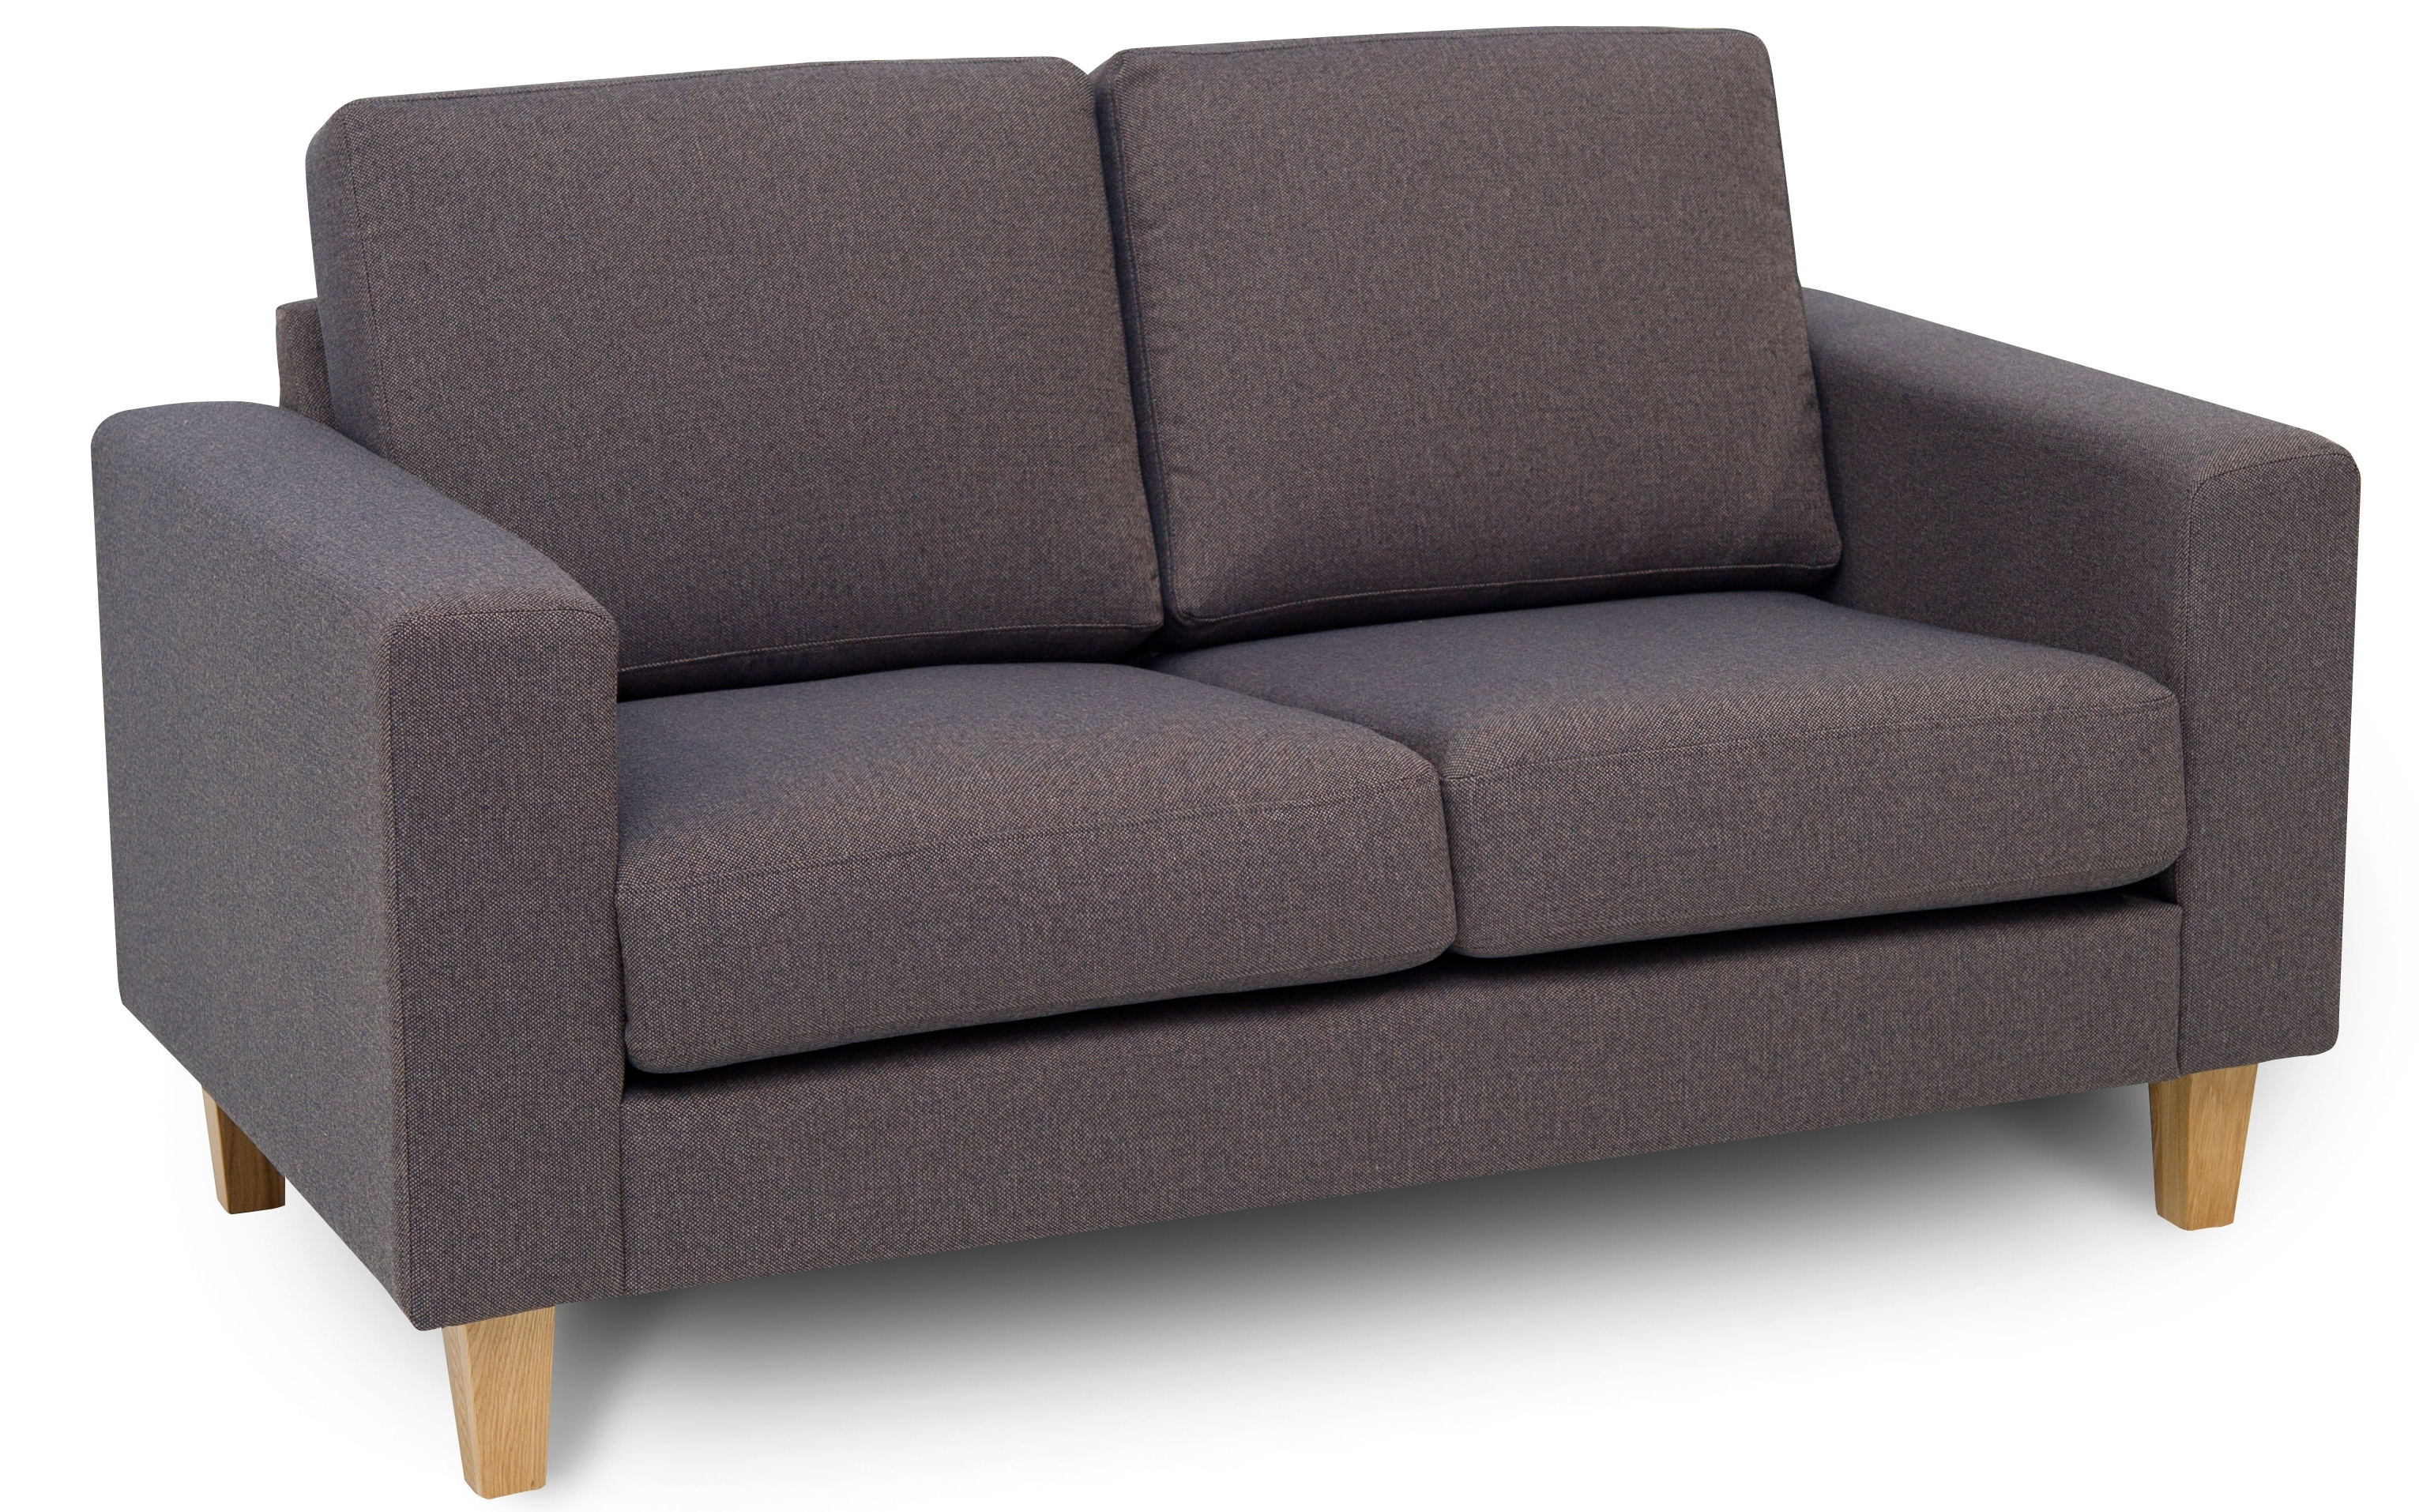 Designer Sofas (View 8 of 20)